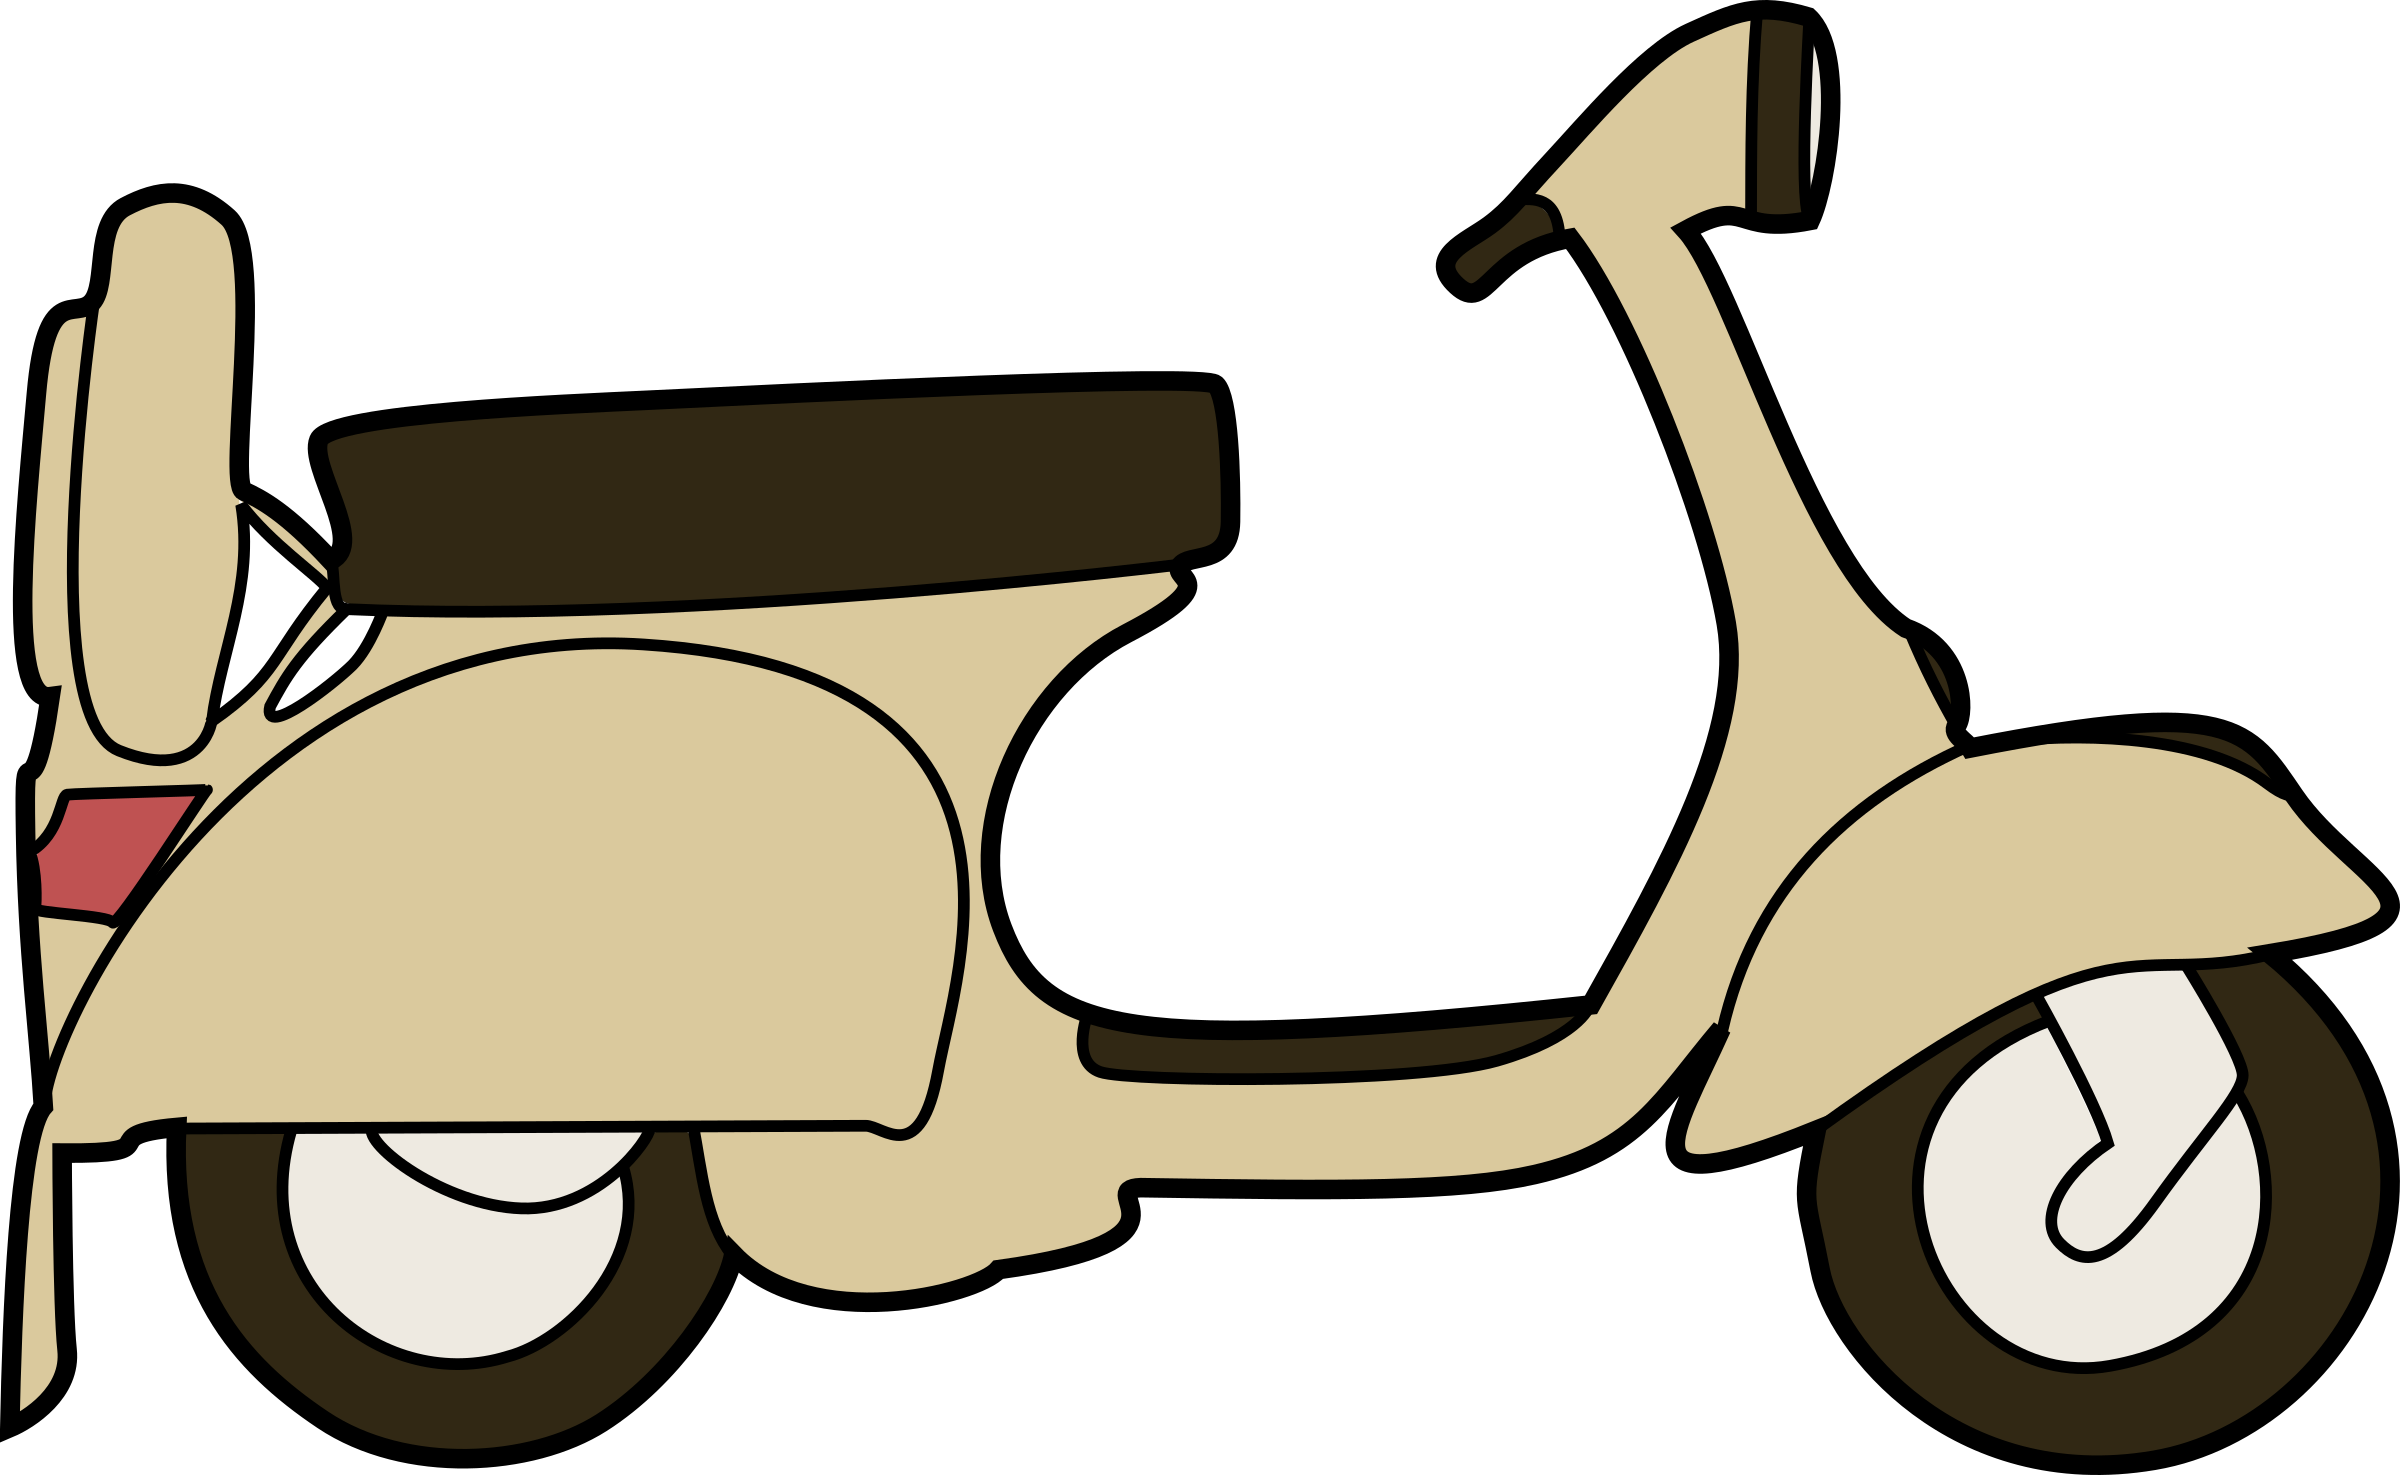 Vespa scooter vector clipart image.